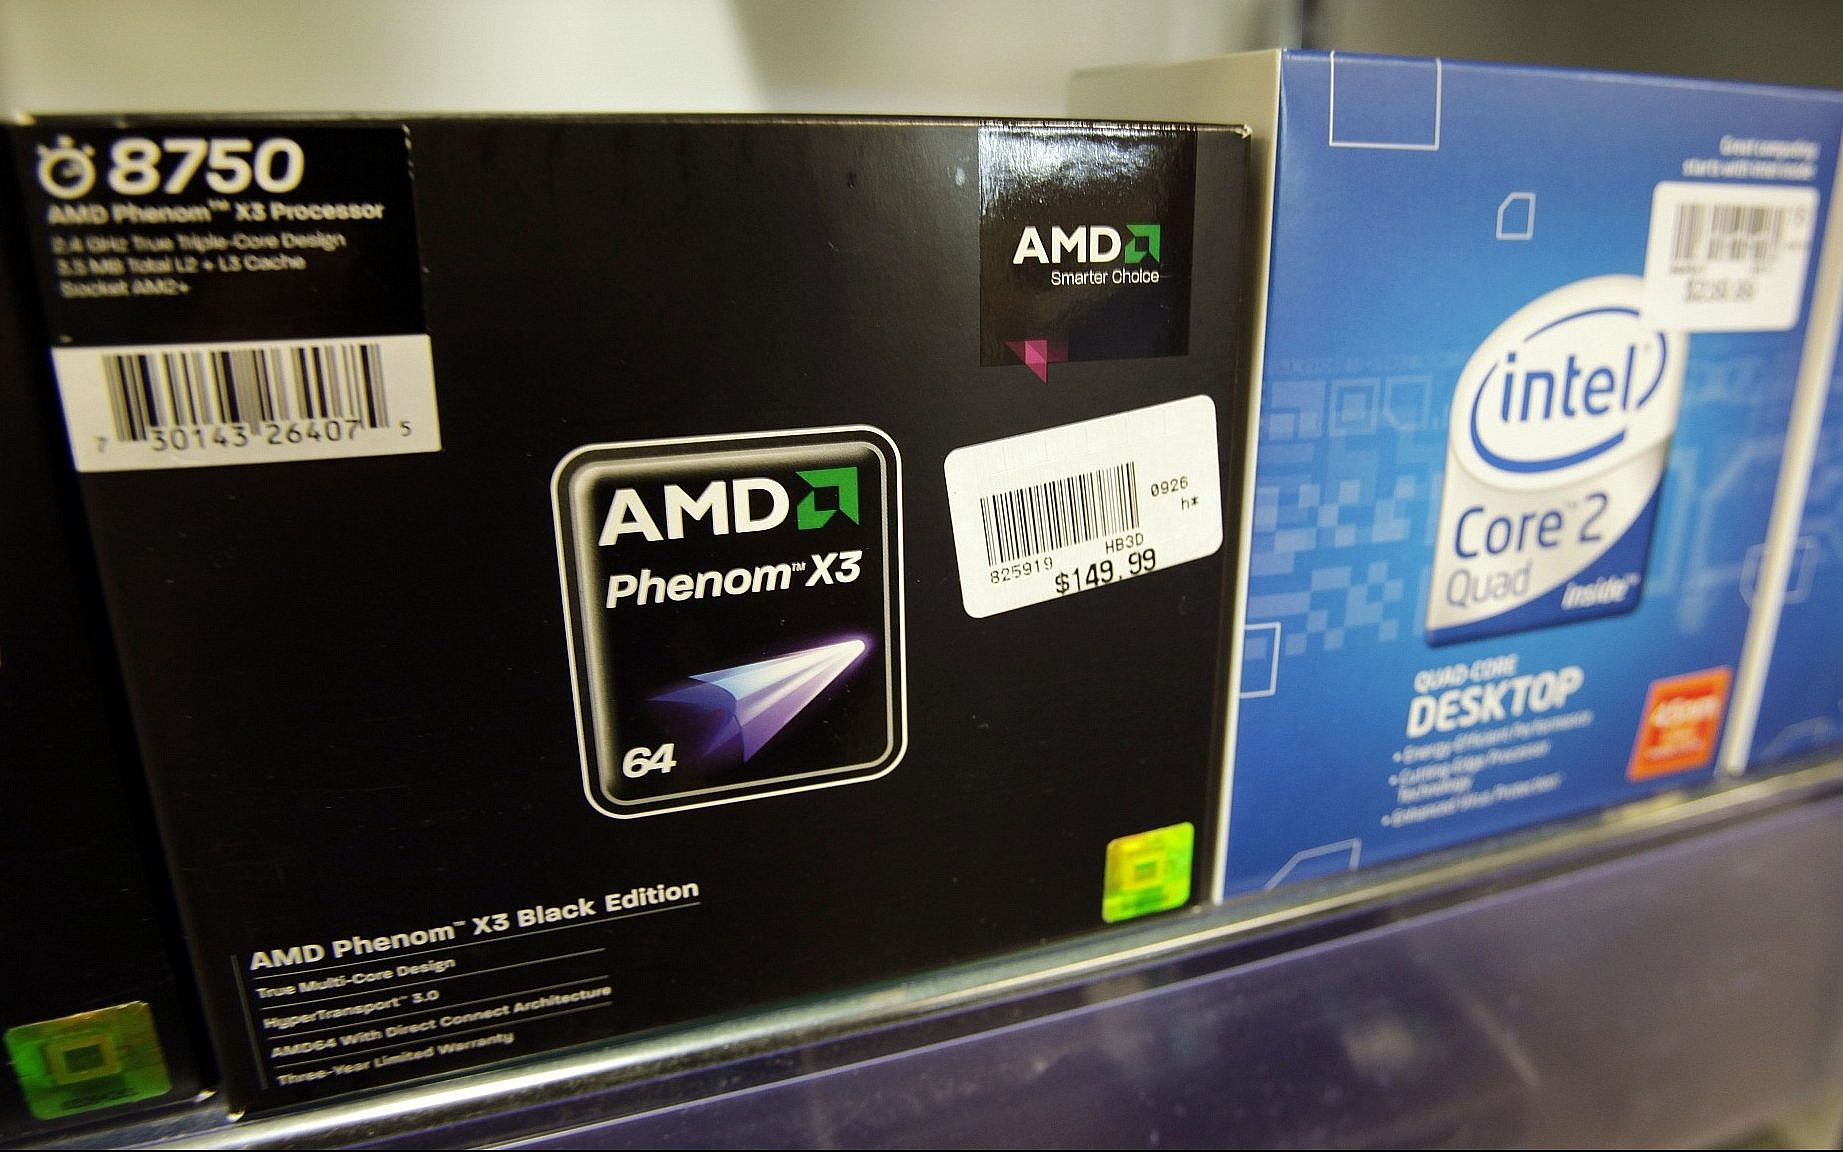 Israeli firm claims to find 'critical' security flaws in AMD chips